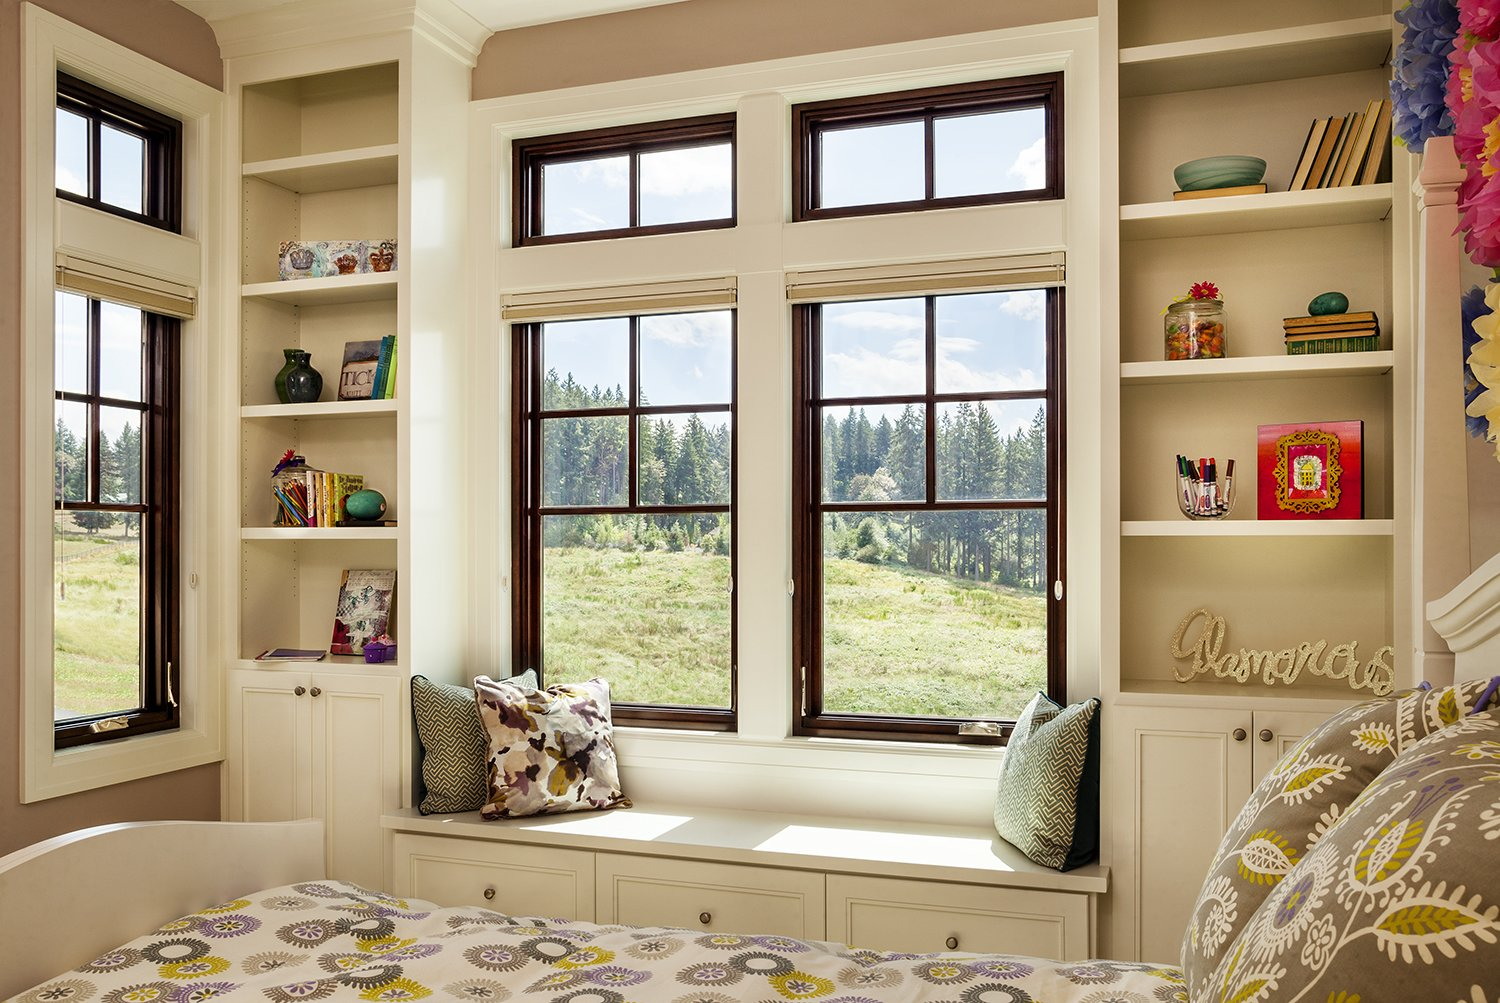 Milgard Essence Series® windows are available in a wide variety of obscure glass patterns, and for spaces that demand serenity, laminated glass is especially proficient at noise attenuation.  Shining Examples of Clerestory Windows by Luke Hopping from The Window Series That Matches Performance, Appearance, and Ease-of-Use